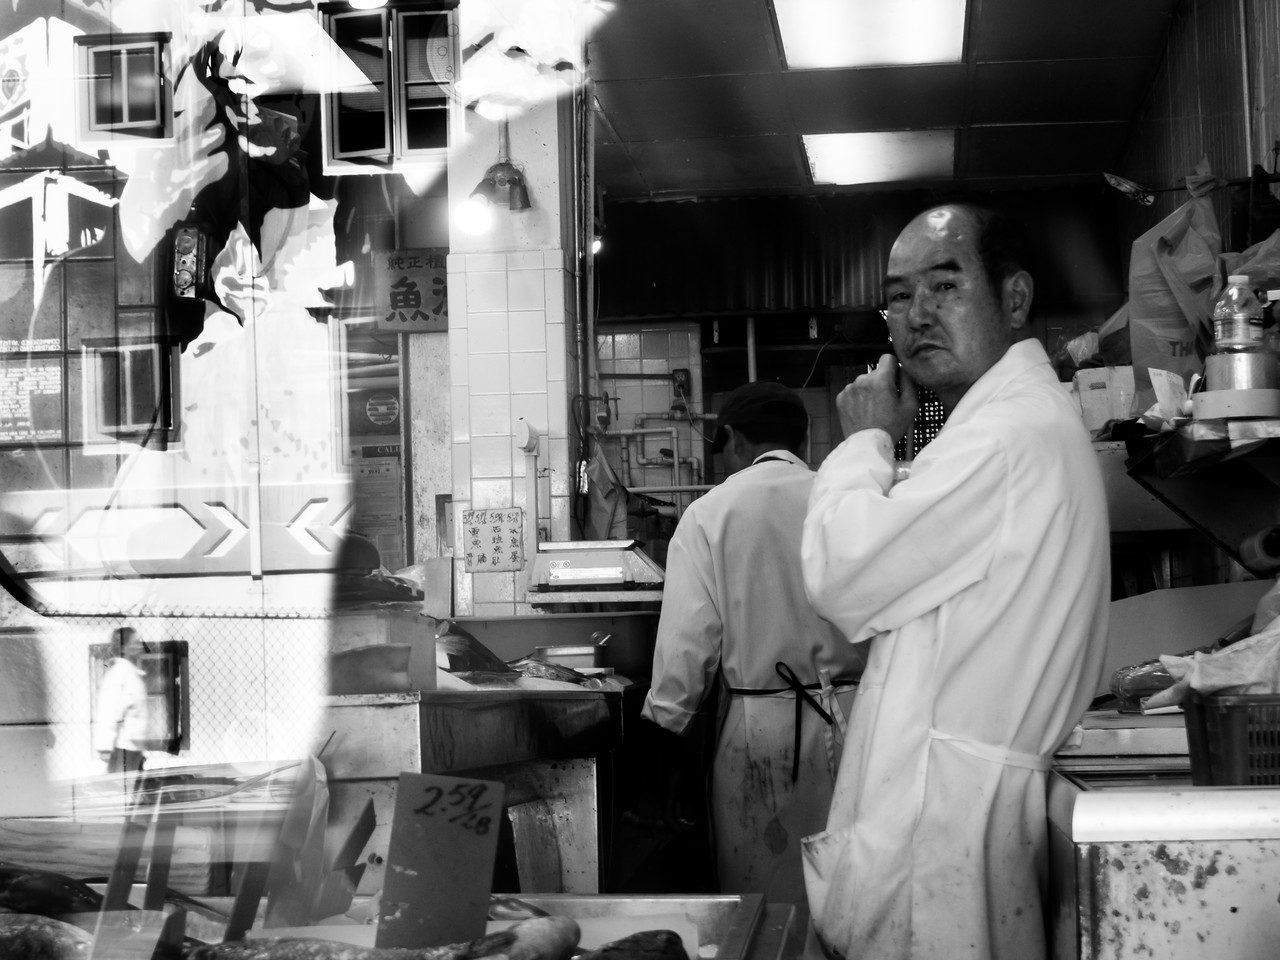 Chinese Butcher Shop